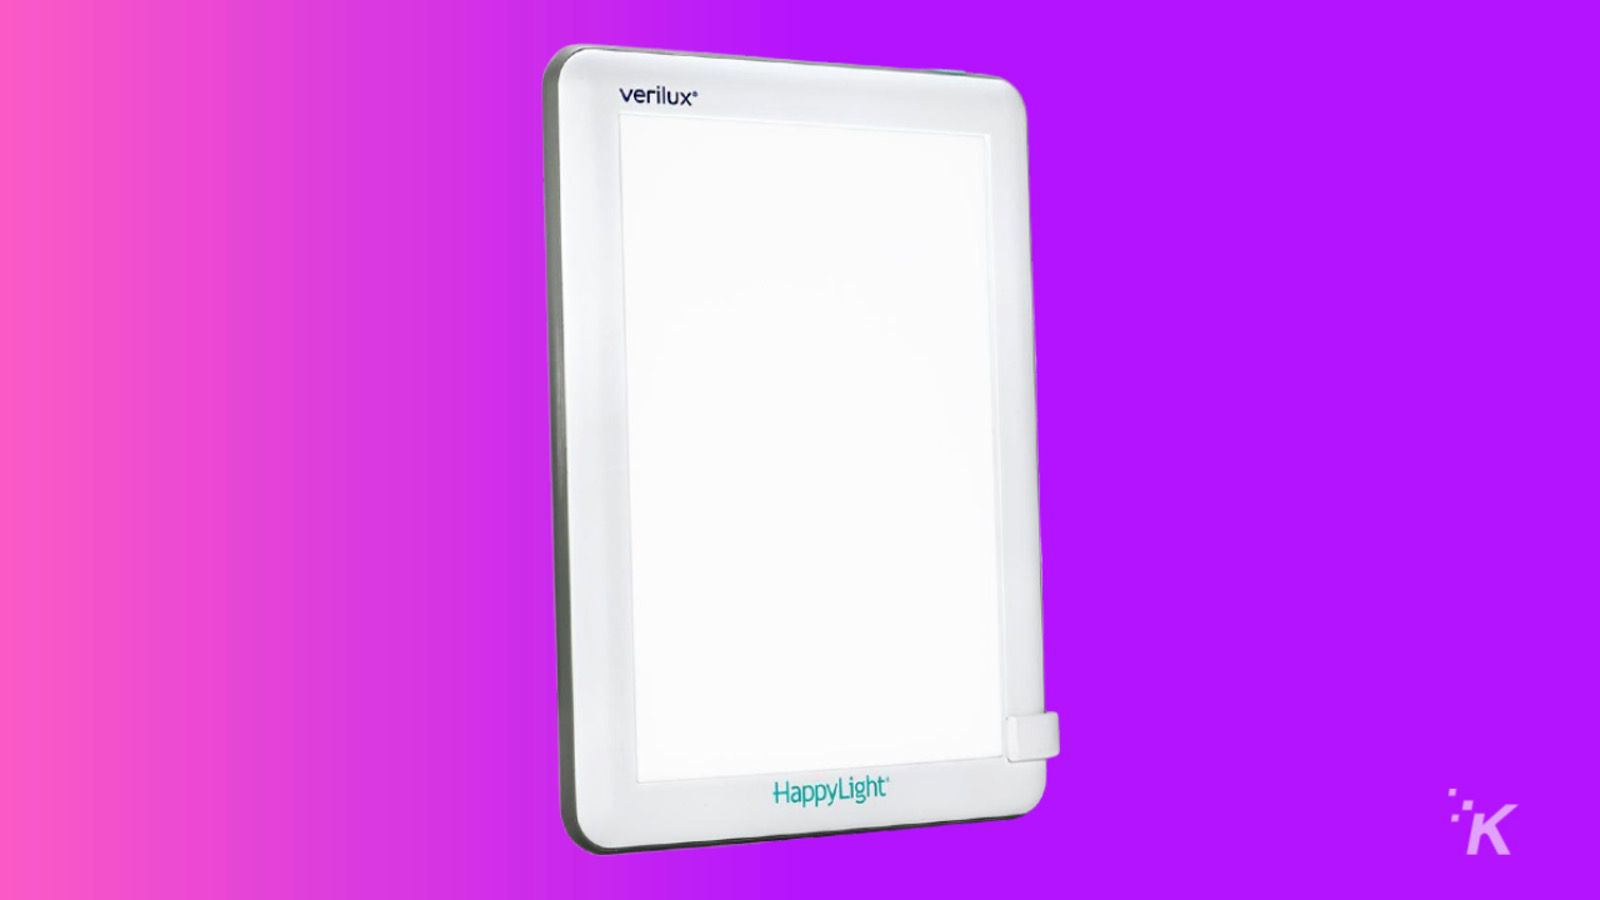 verilux happylight knowtechie gift guide